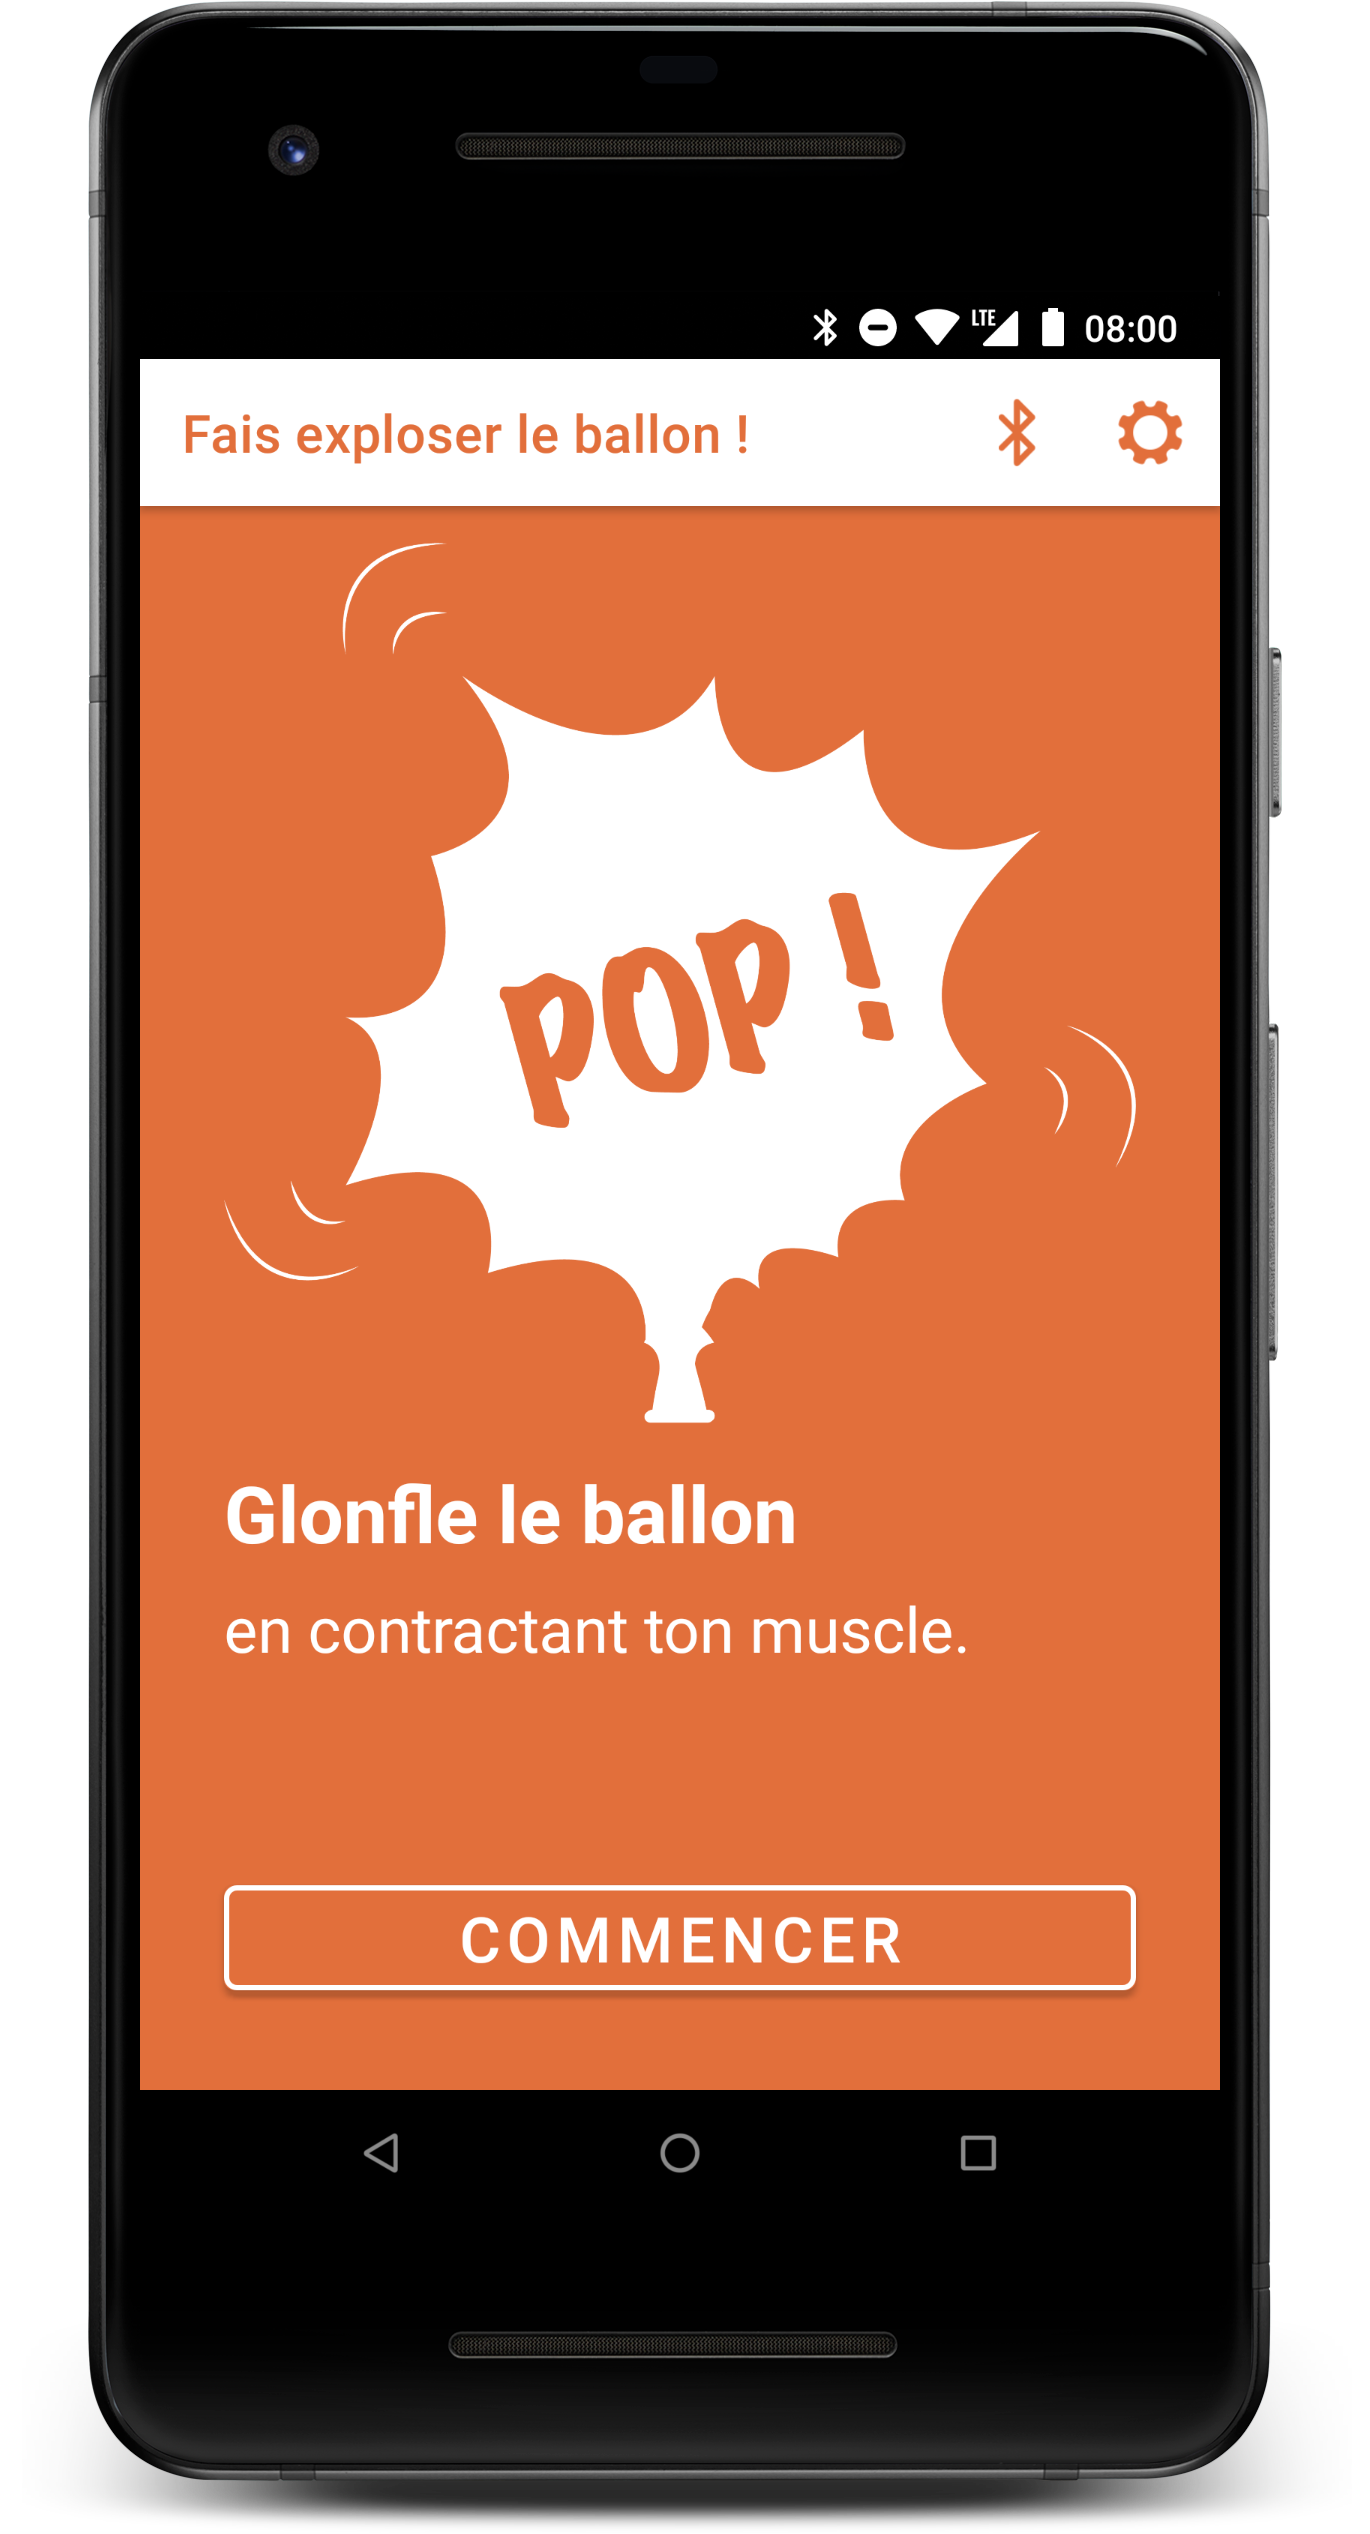 The ballon game in the Android app